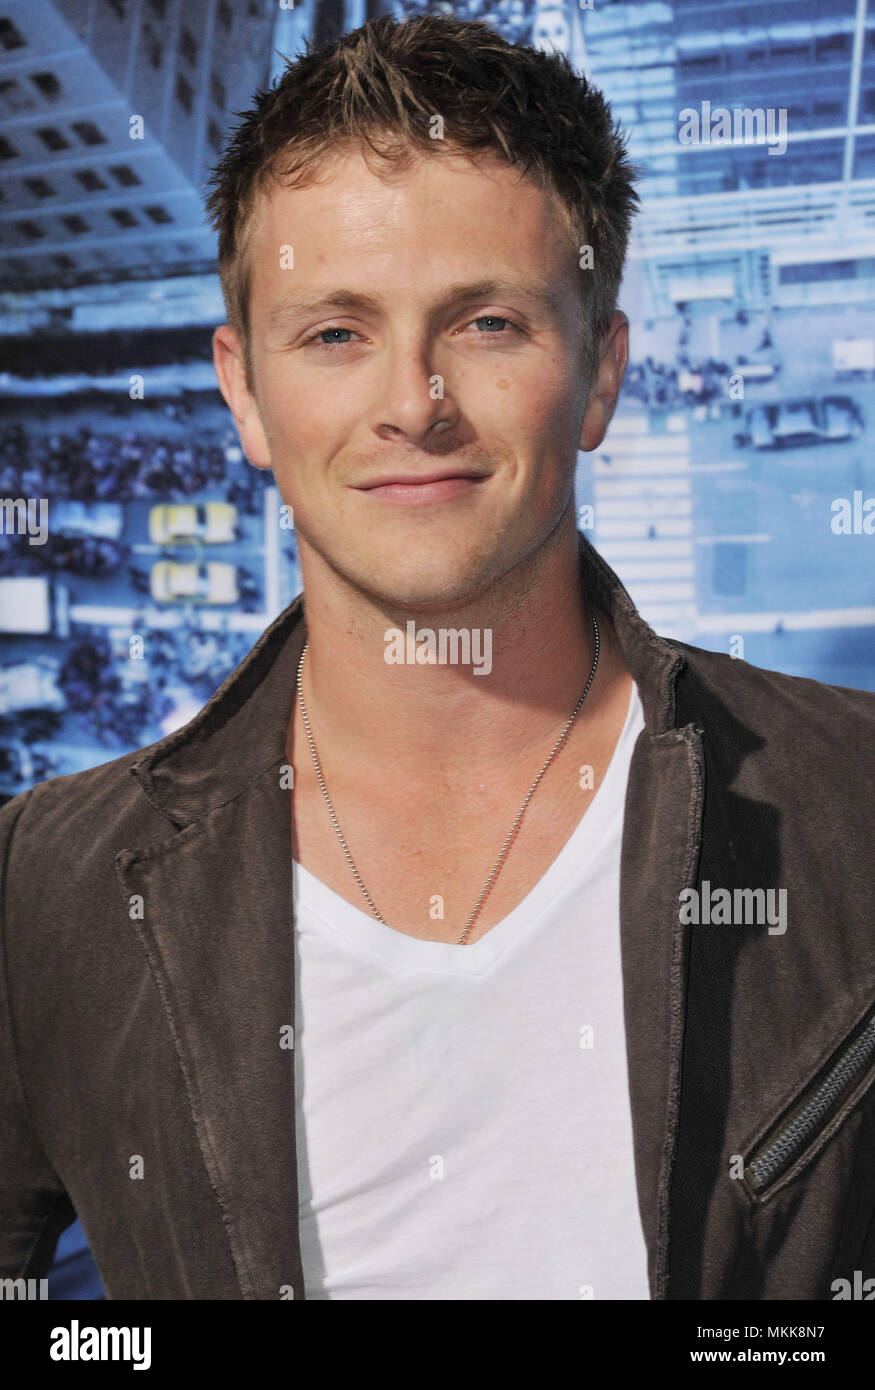 Charlie Bewley At The Man On A Ledge Premiere At The Chinese Theatre In Los Angeles